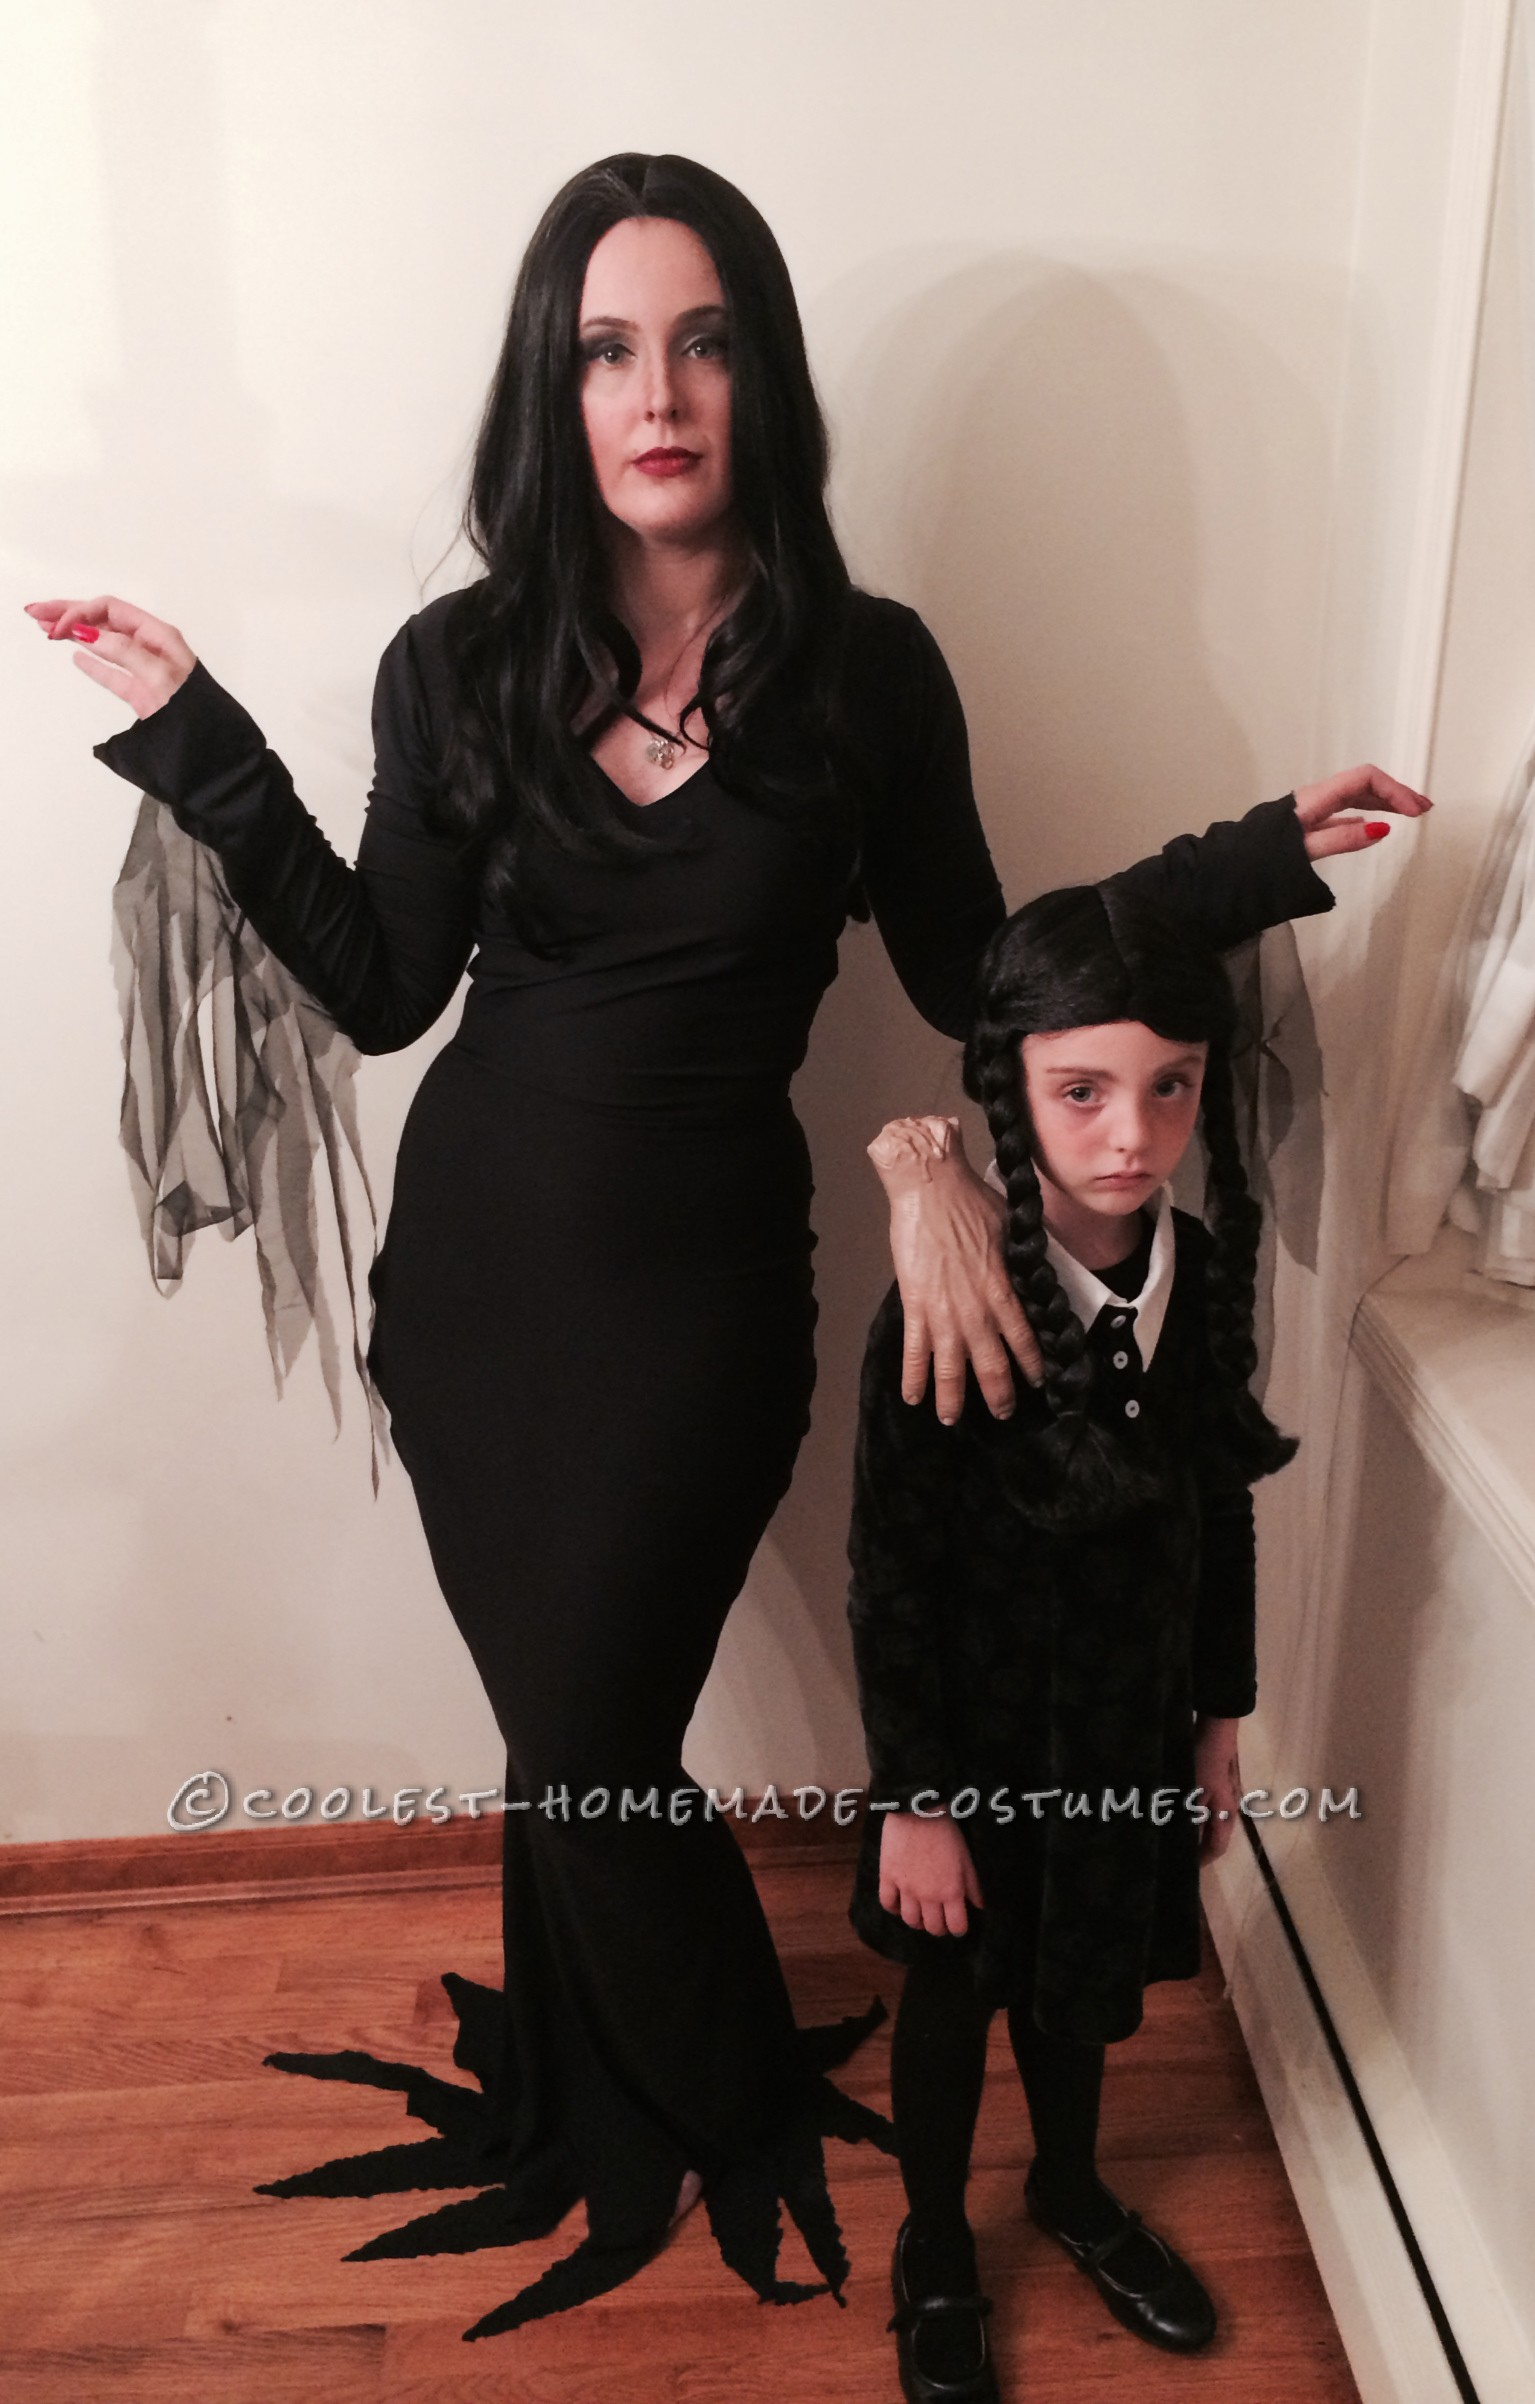 Cool Homemade Mom and Daughter Couple Costume: Morticia and Wednesday Addams with Thing